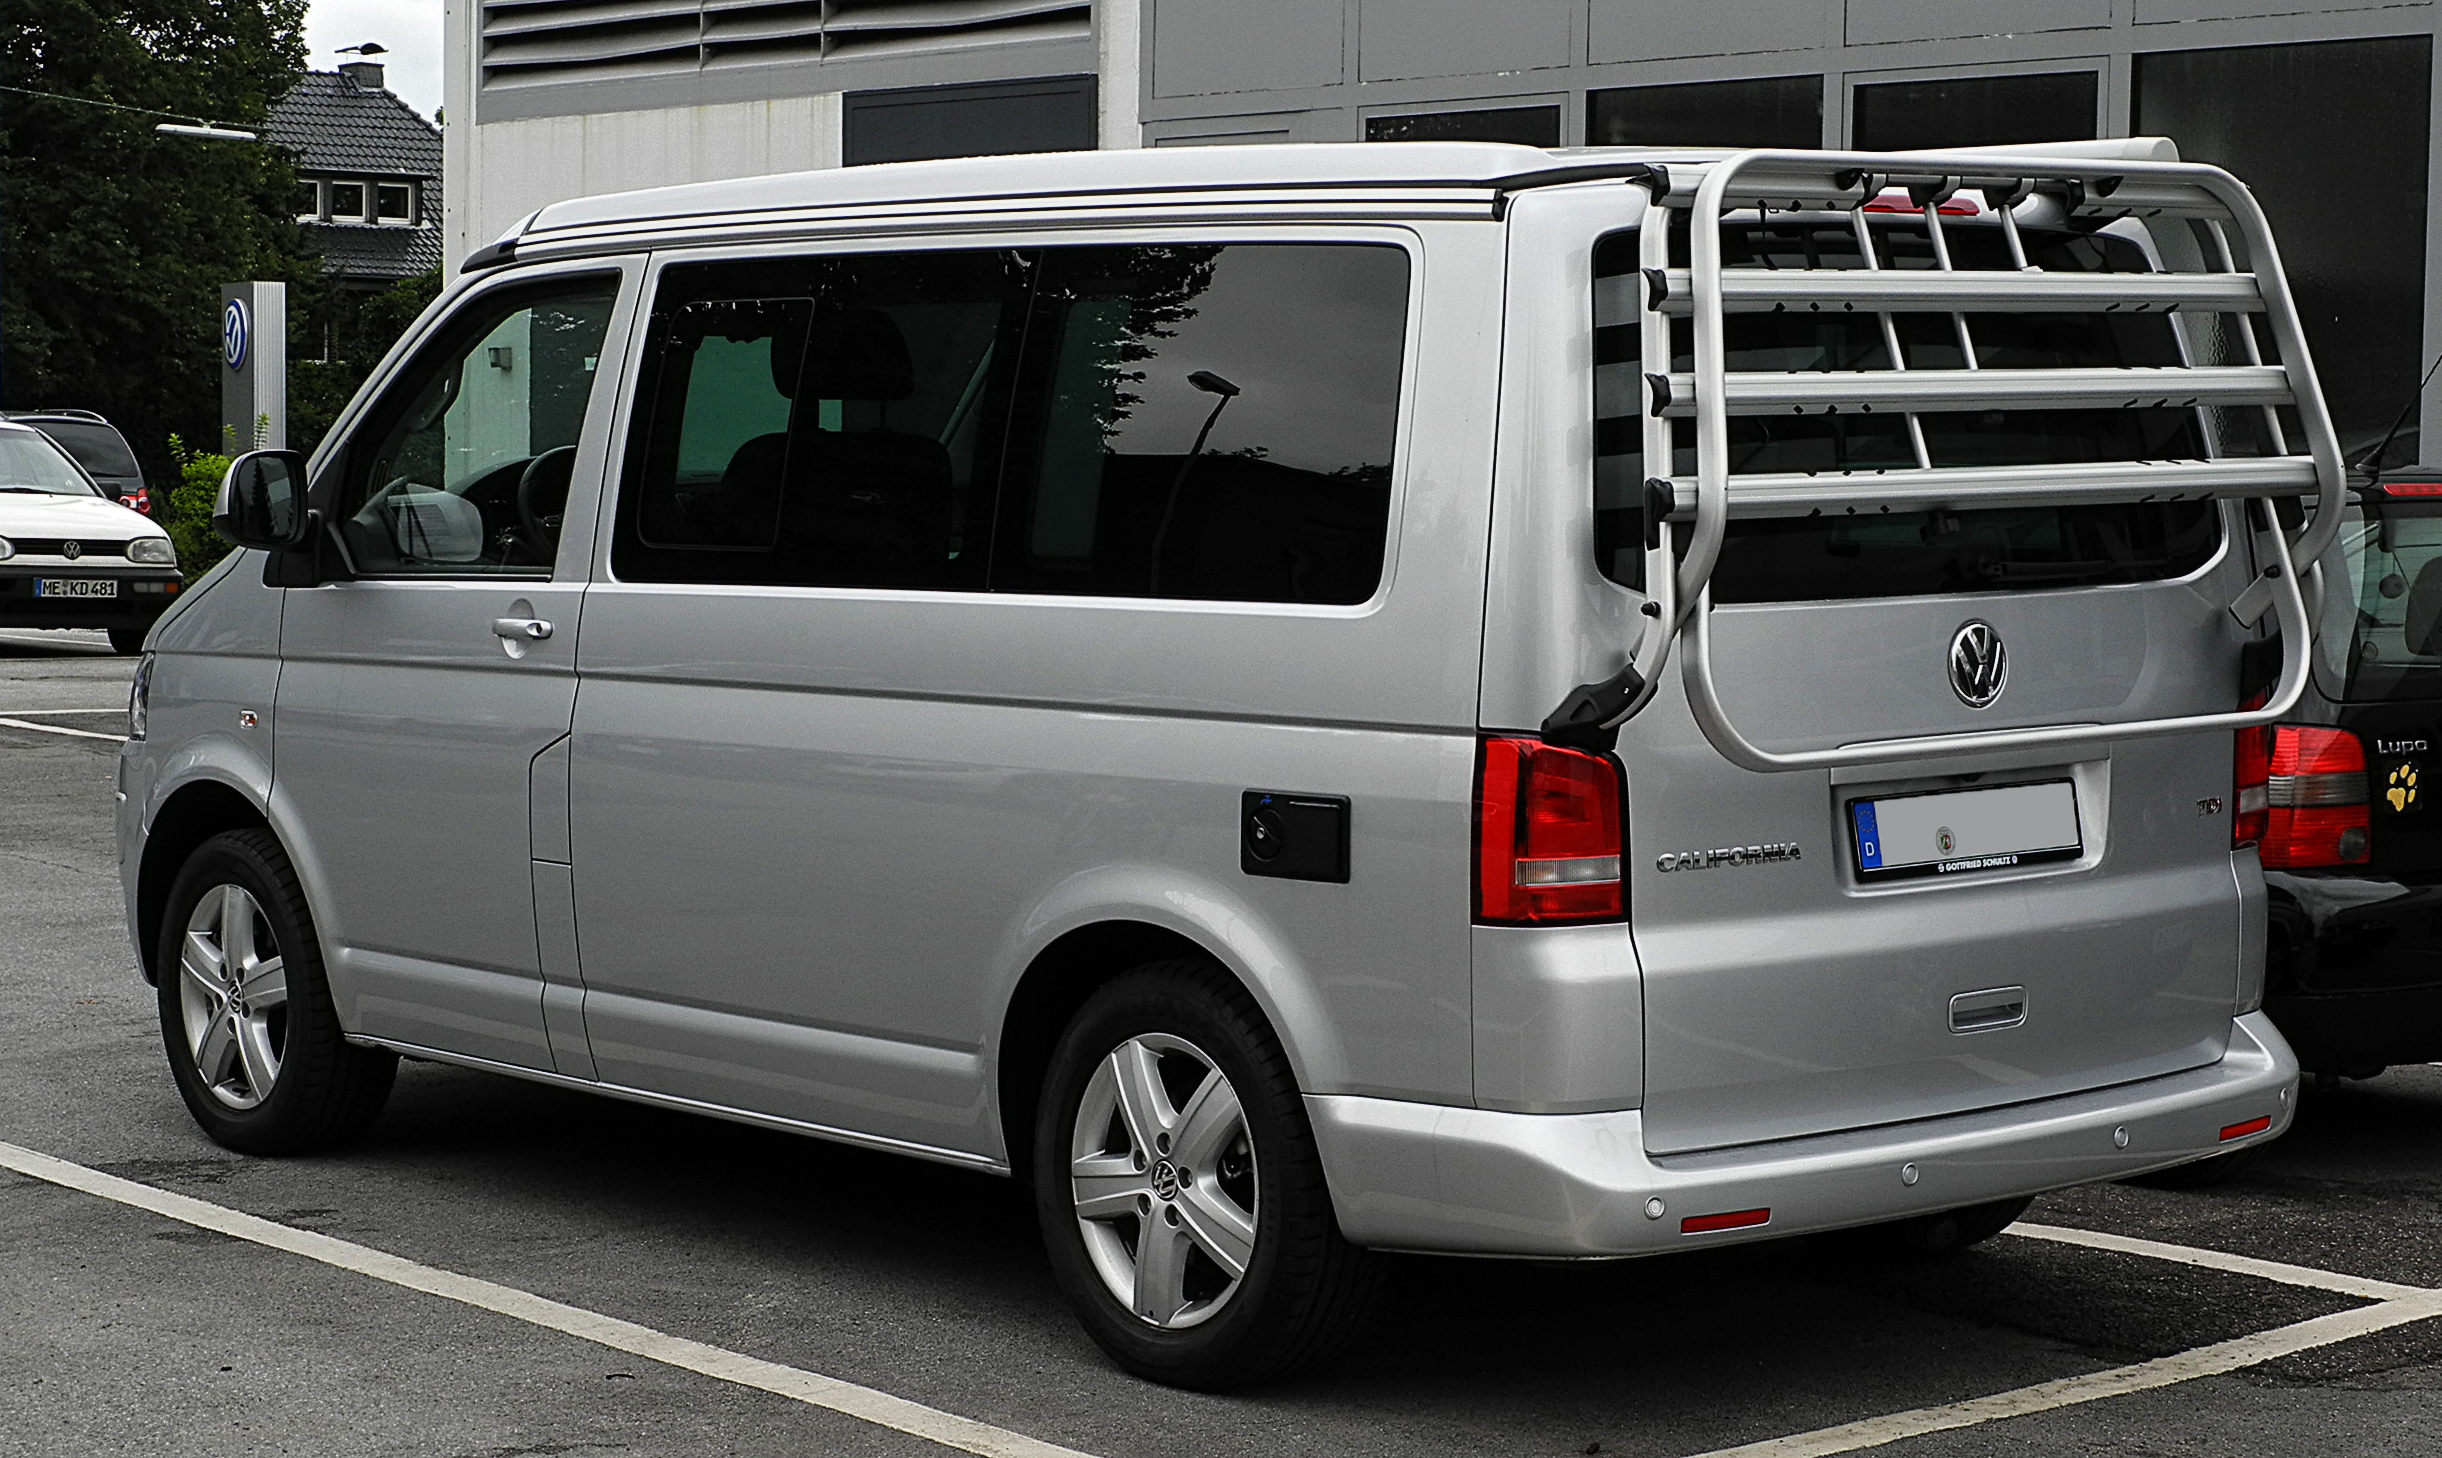 file vw california europe 2 0 tdi t5 facelift. Black Bedroom Furniture Sets. Home Design Ideas